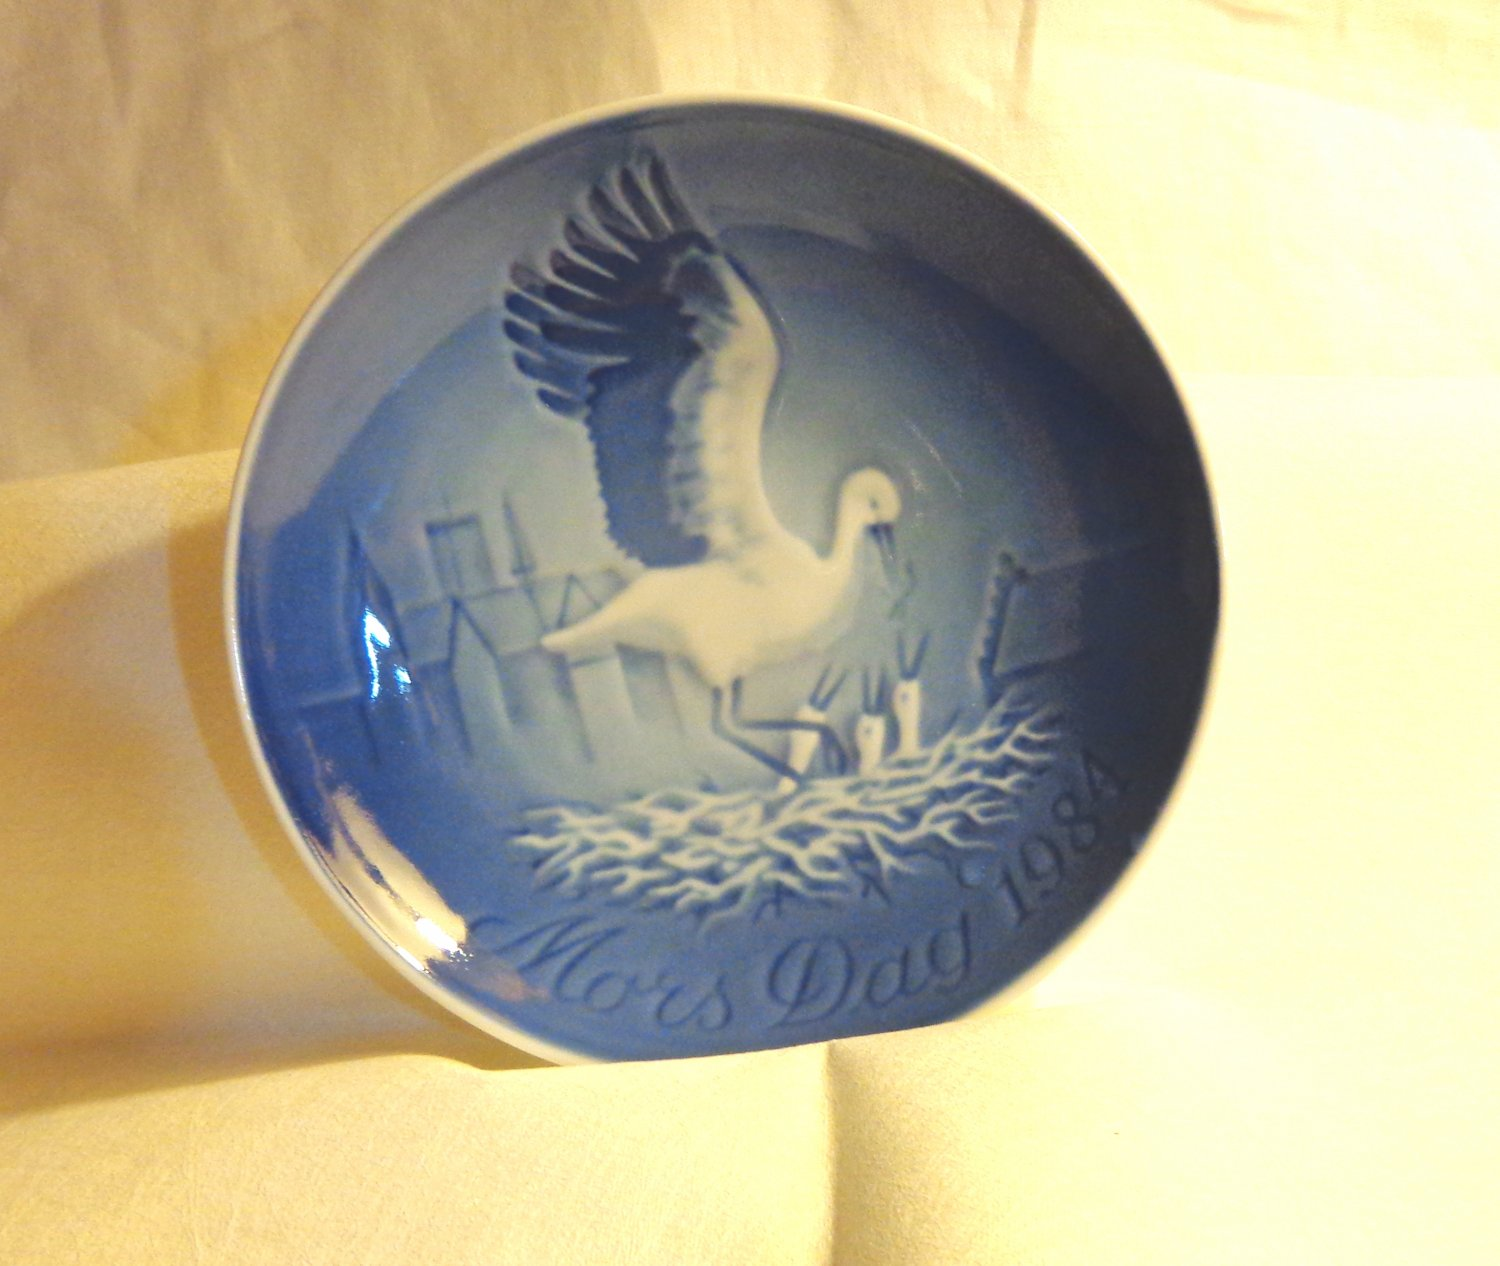 Bing and Grondahl 1984 Mother's Day plate Mors Dag wading bird nestlings blue BG porcelain hc3415